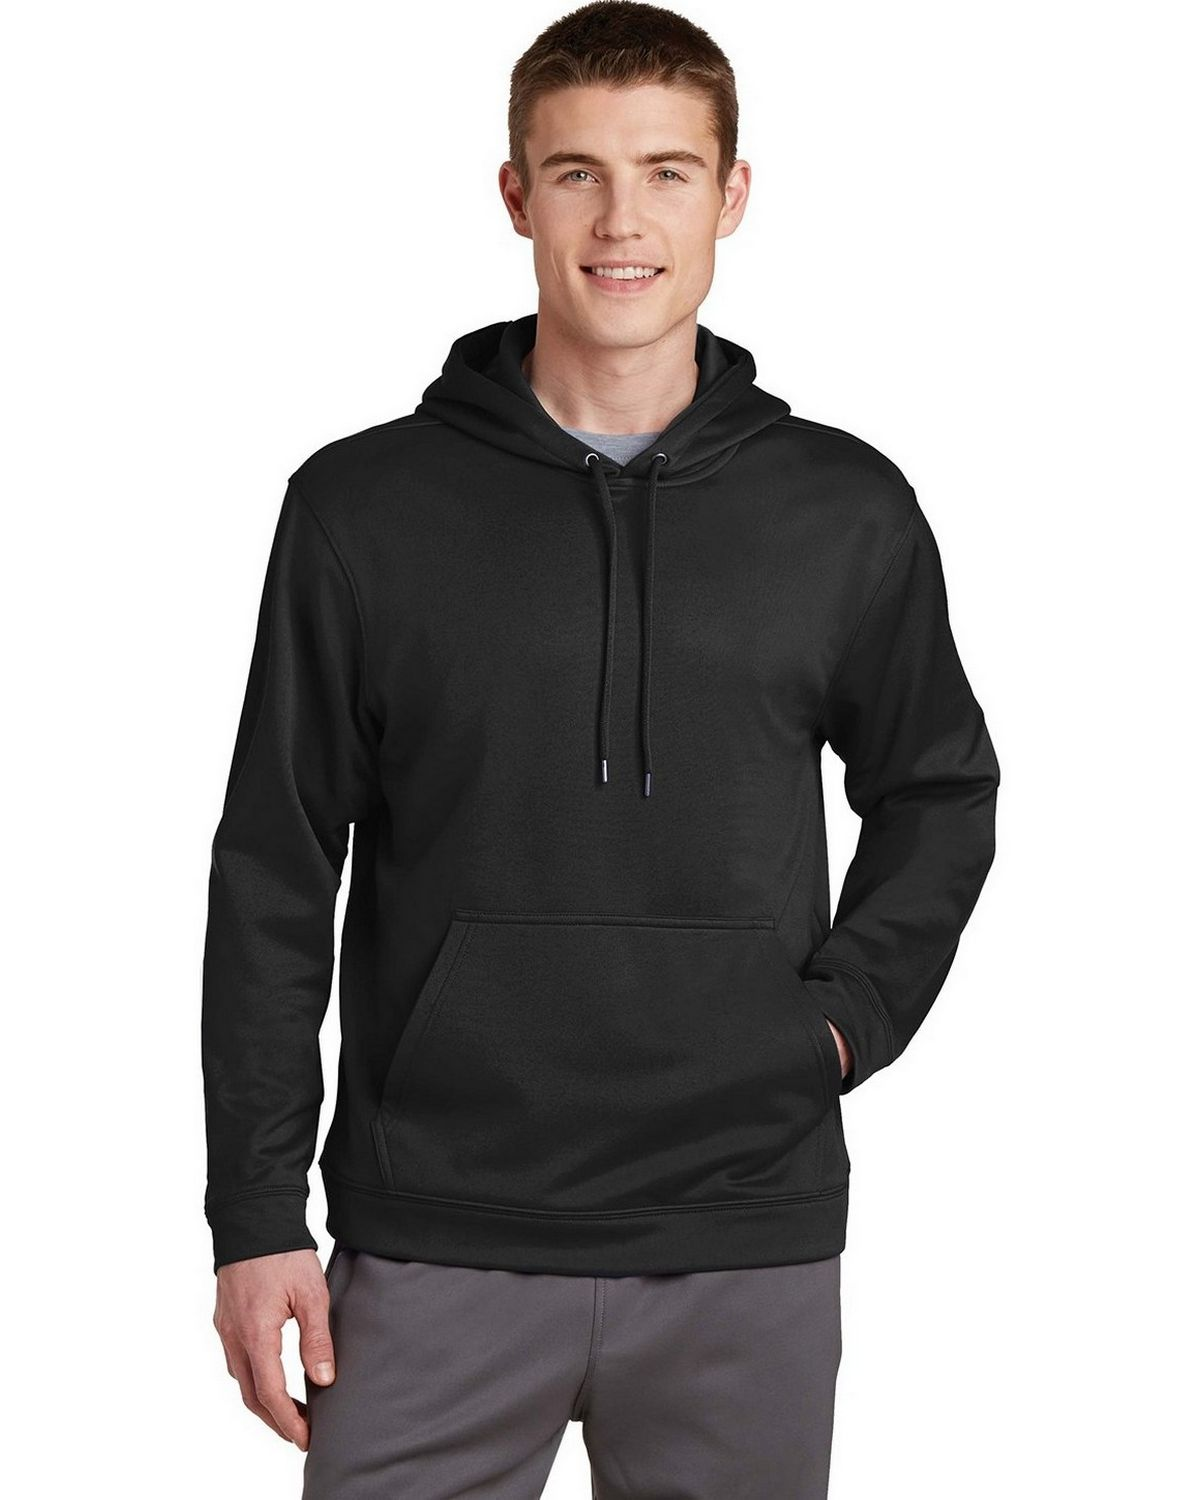 Sport-Tek F244 Sport-Wick Fleece Hooded Pullover - Black - S F244